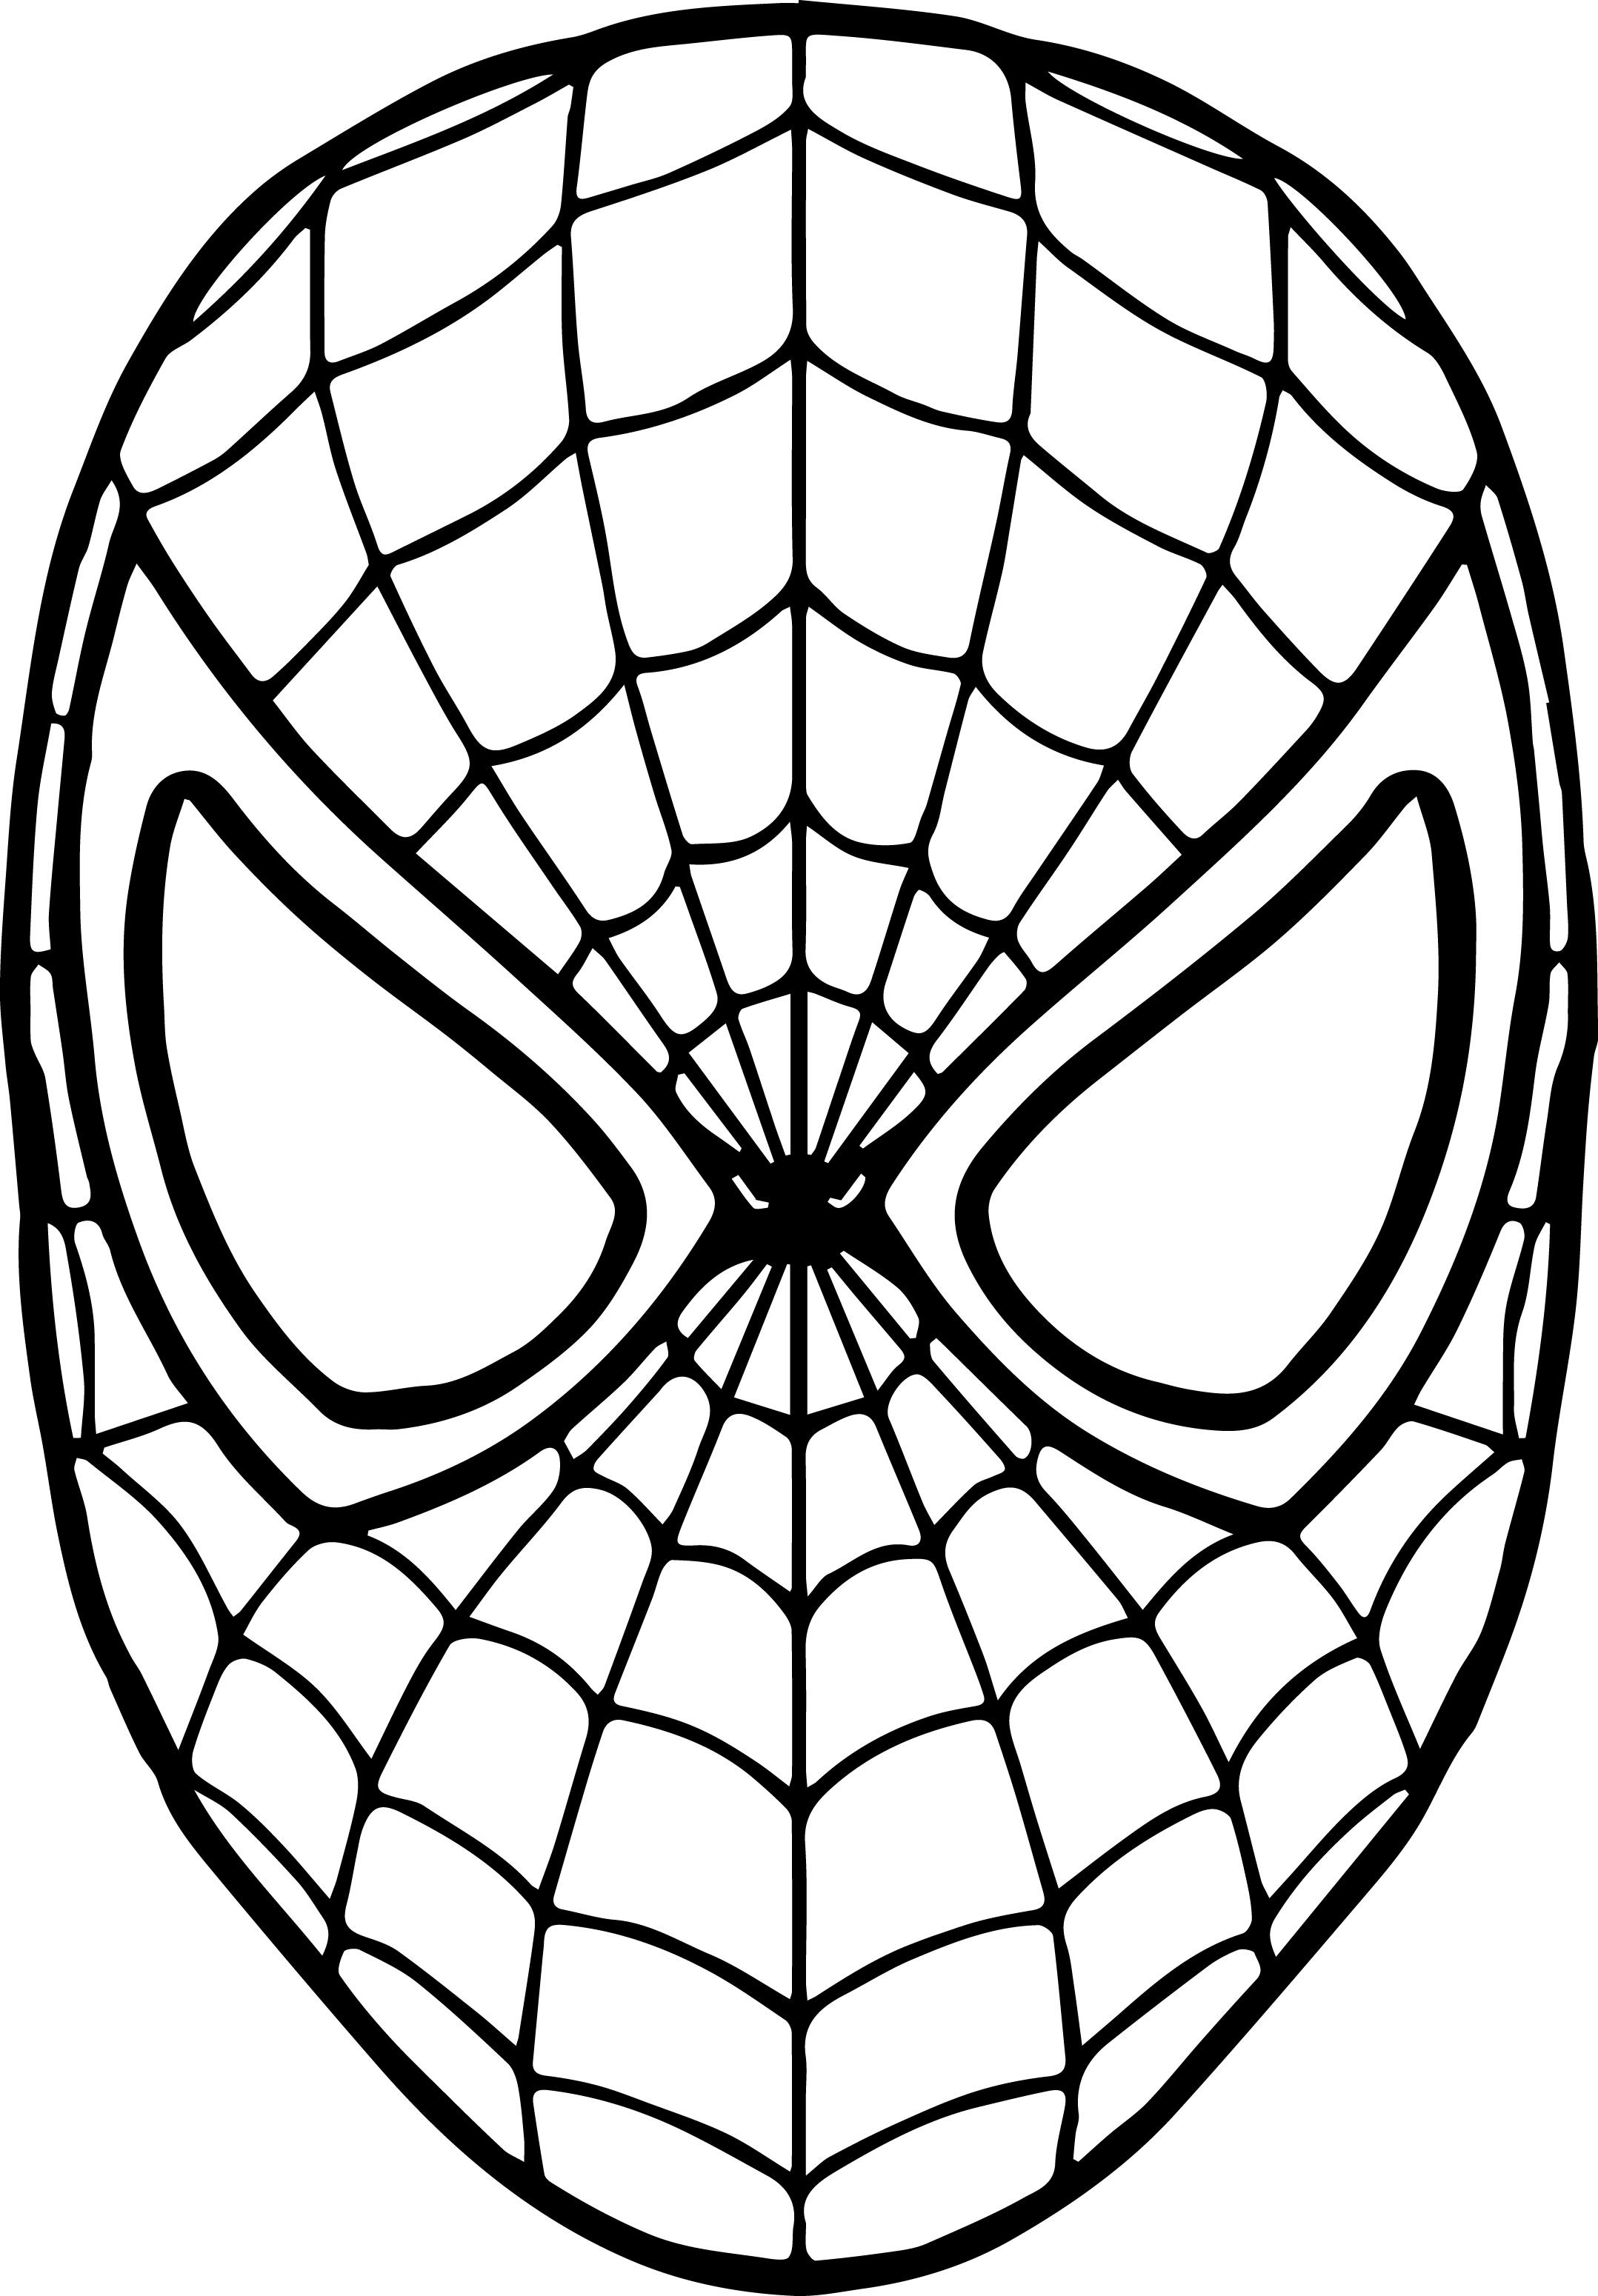 coloring pages spiderman masks - photo#1